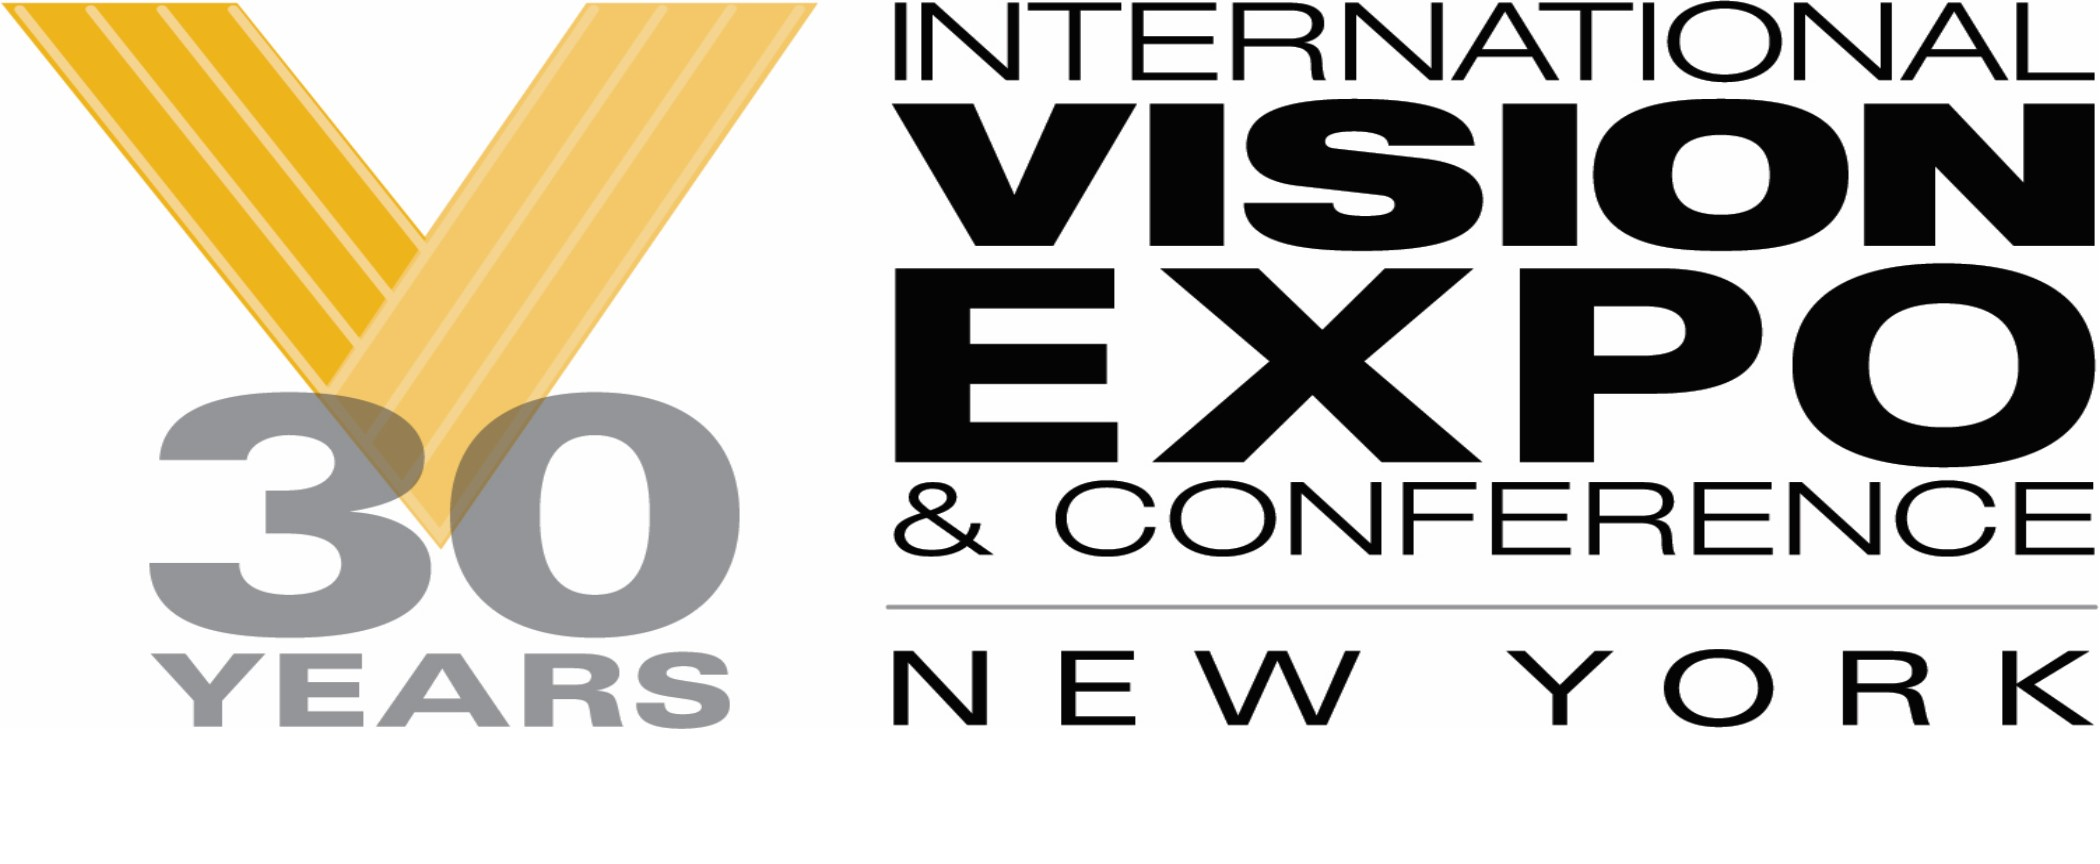 Vision-Expo-East